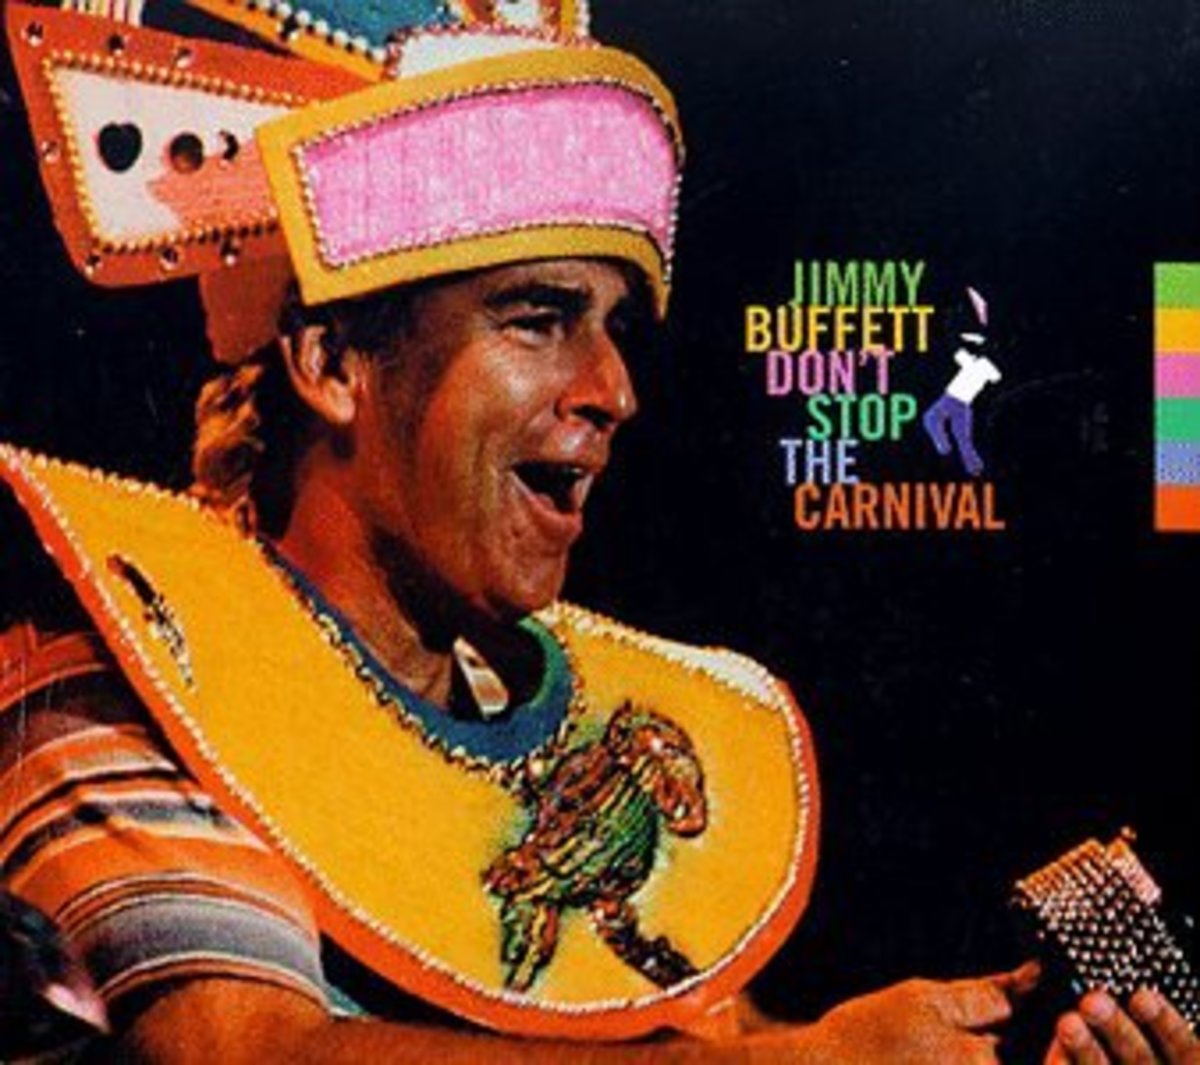 Herman Wouk wrote the book. Jimmy Buffet produced the musical with Wouk's help.